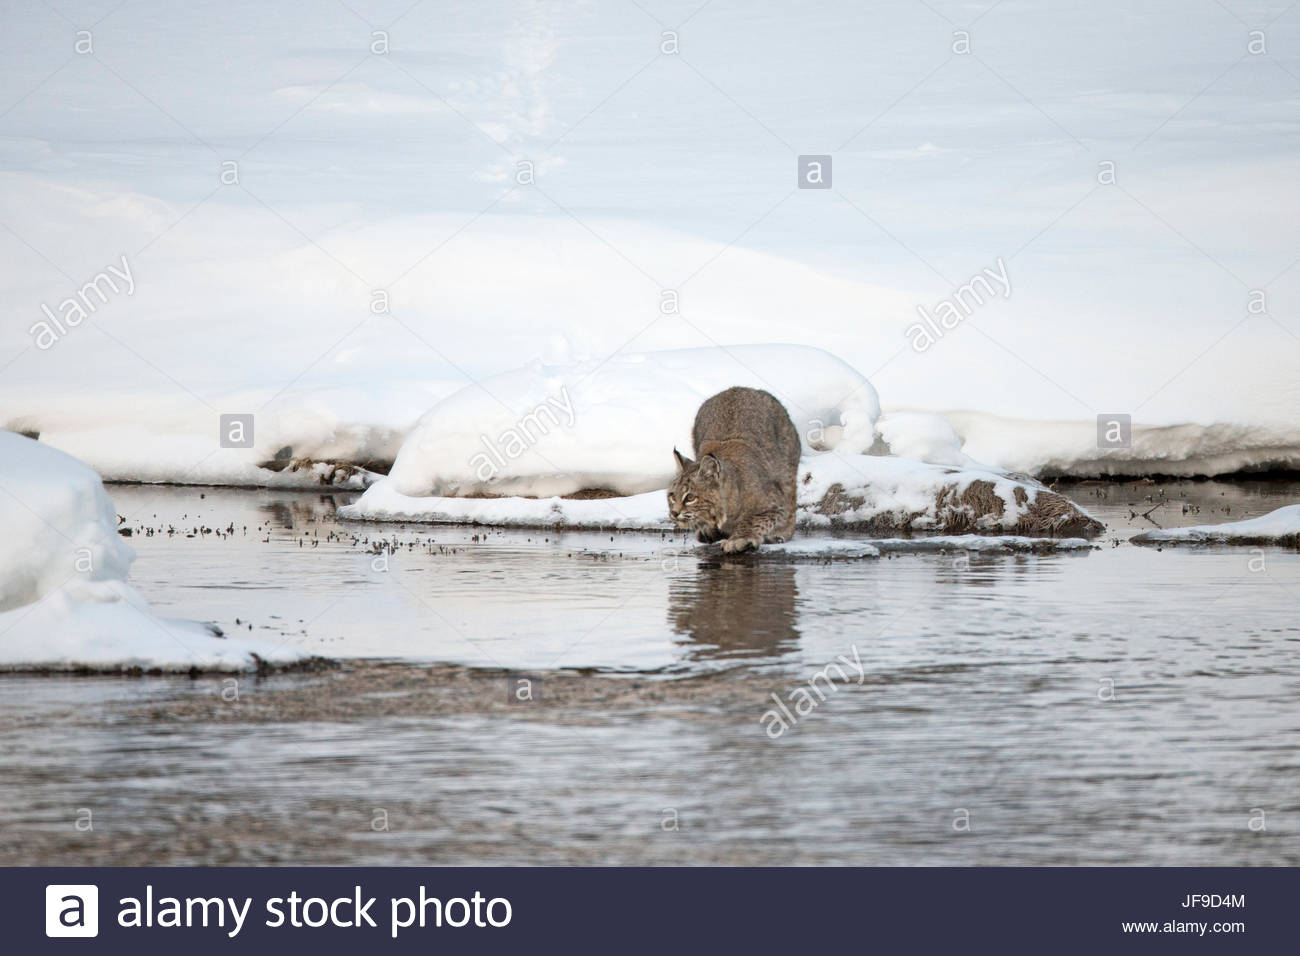 A bobcat, Lynx rufus, crouched to leap across water. Stock Photo